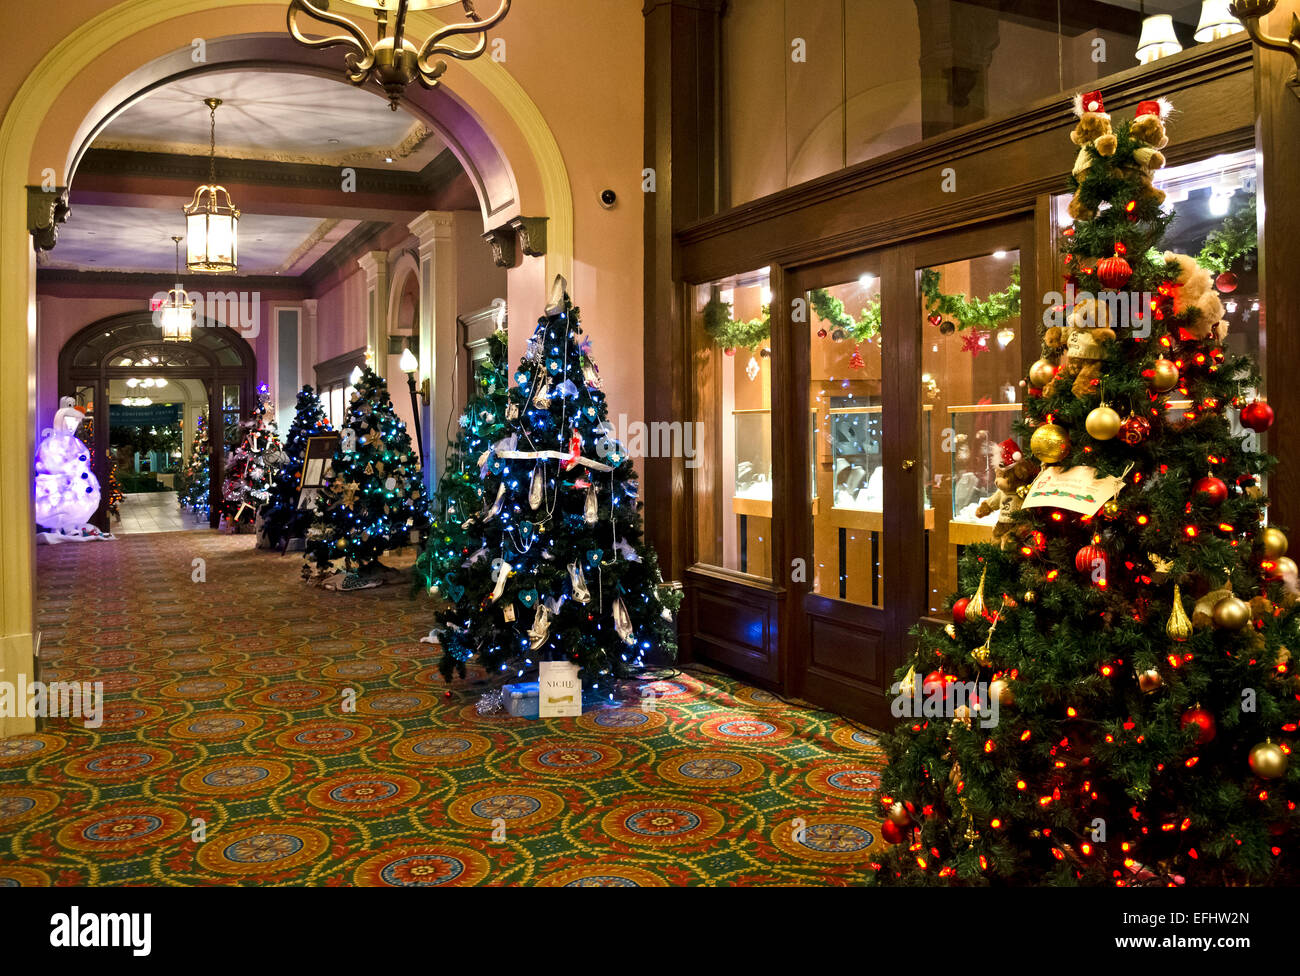 Fairmont Empress Hotel in Victoria BC Canada at Christmas with